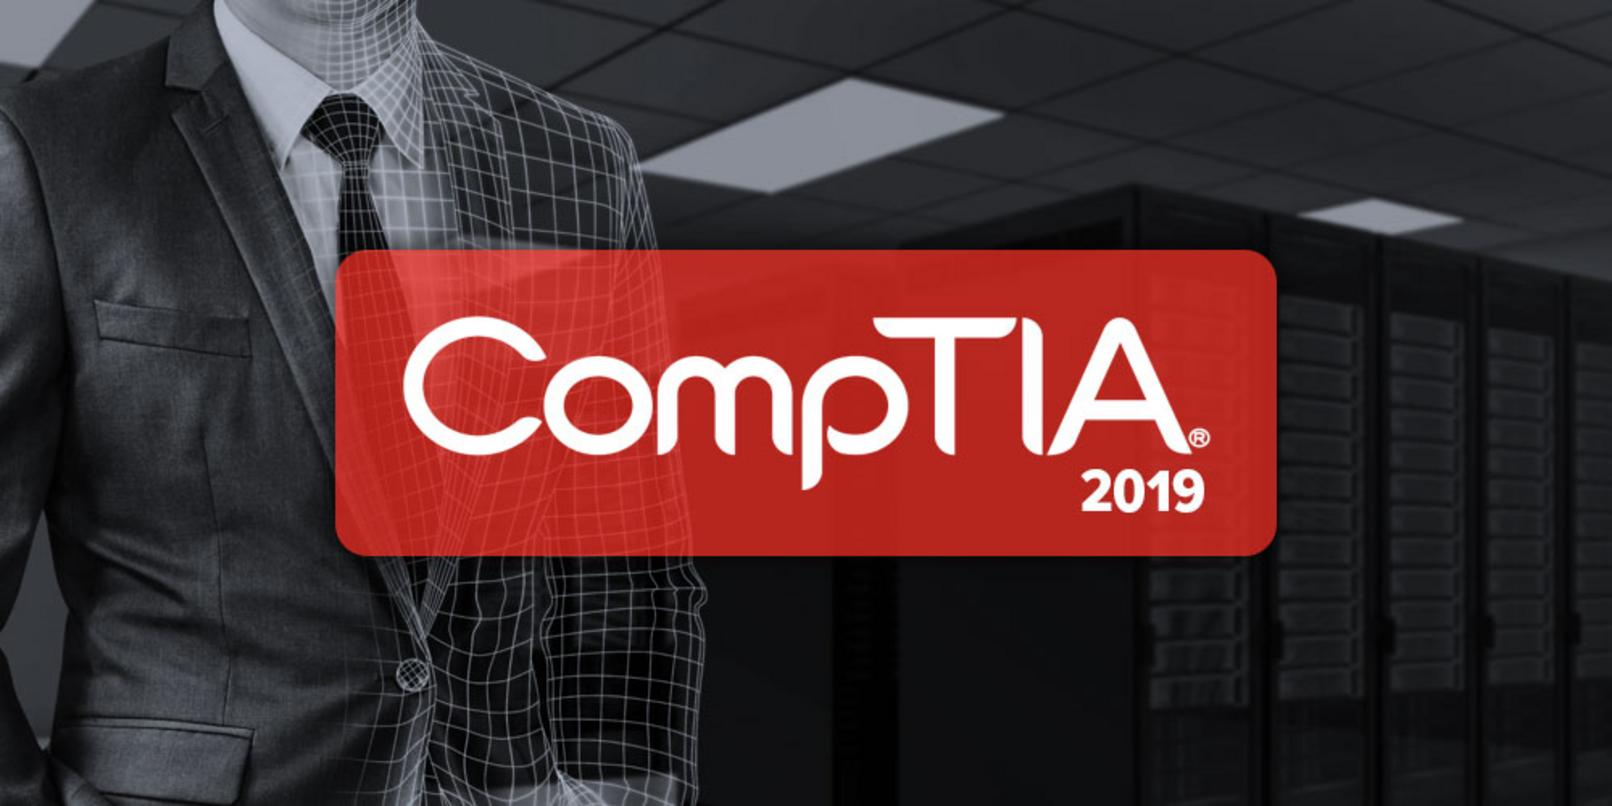 Prep to ace a dozen prized CompTIA certification exams with this $69 bundle